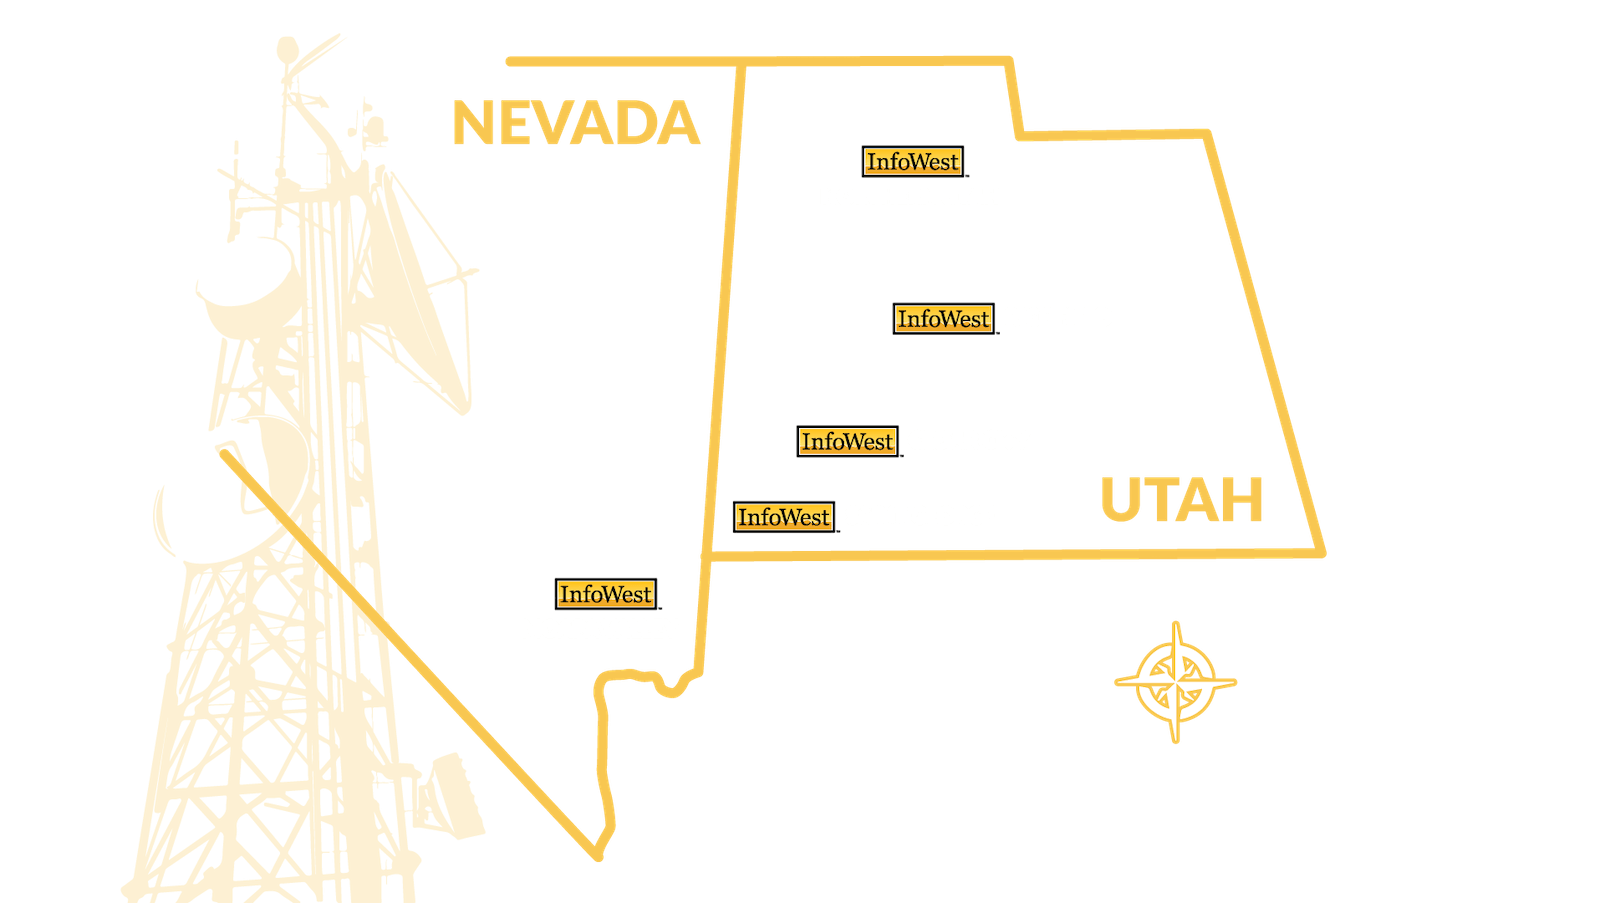 infowest-network-map